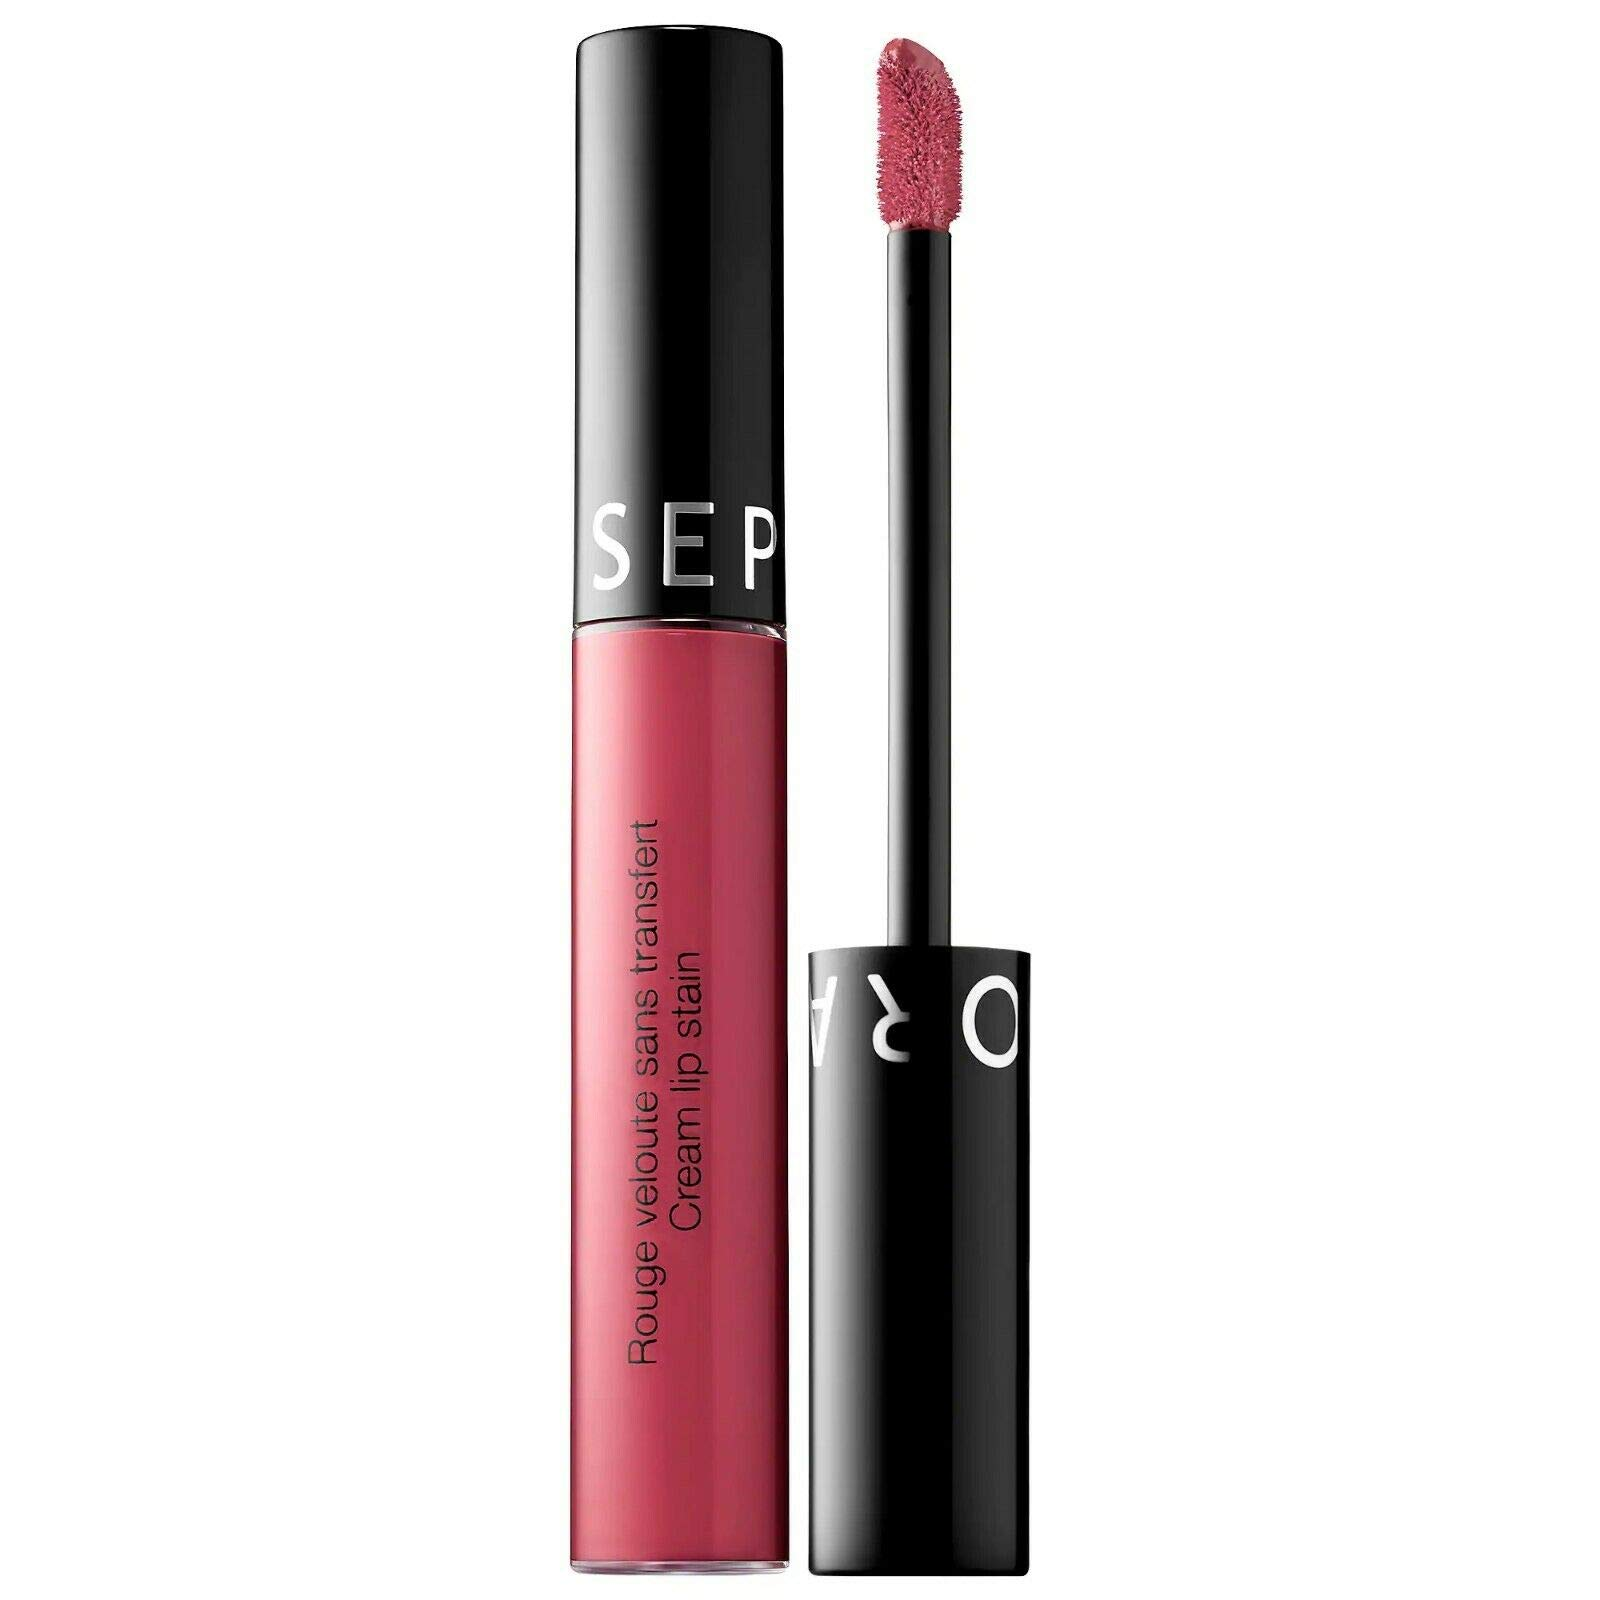 SEPHORA CREAM LIP STAIN 86 ENGLISH ROSE by SEPHORA